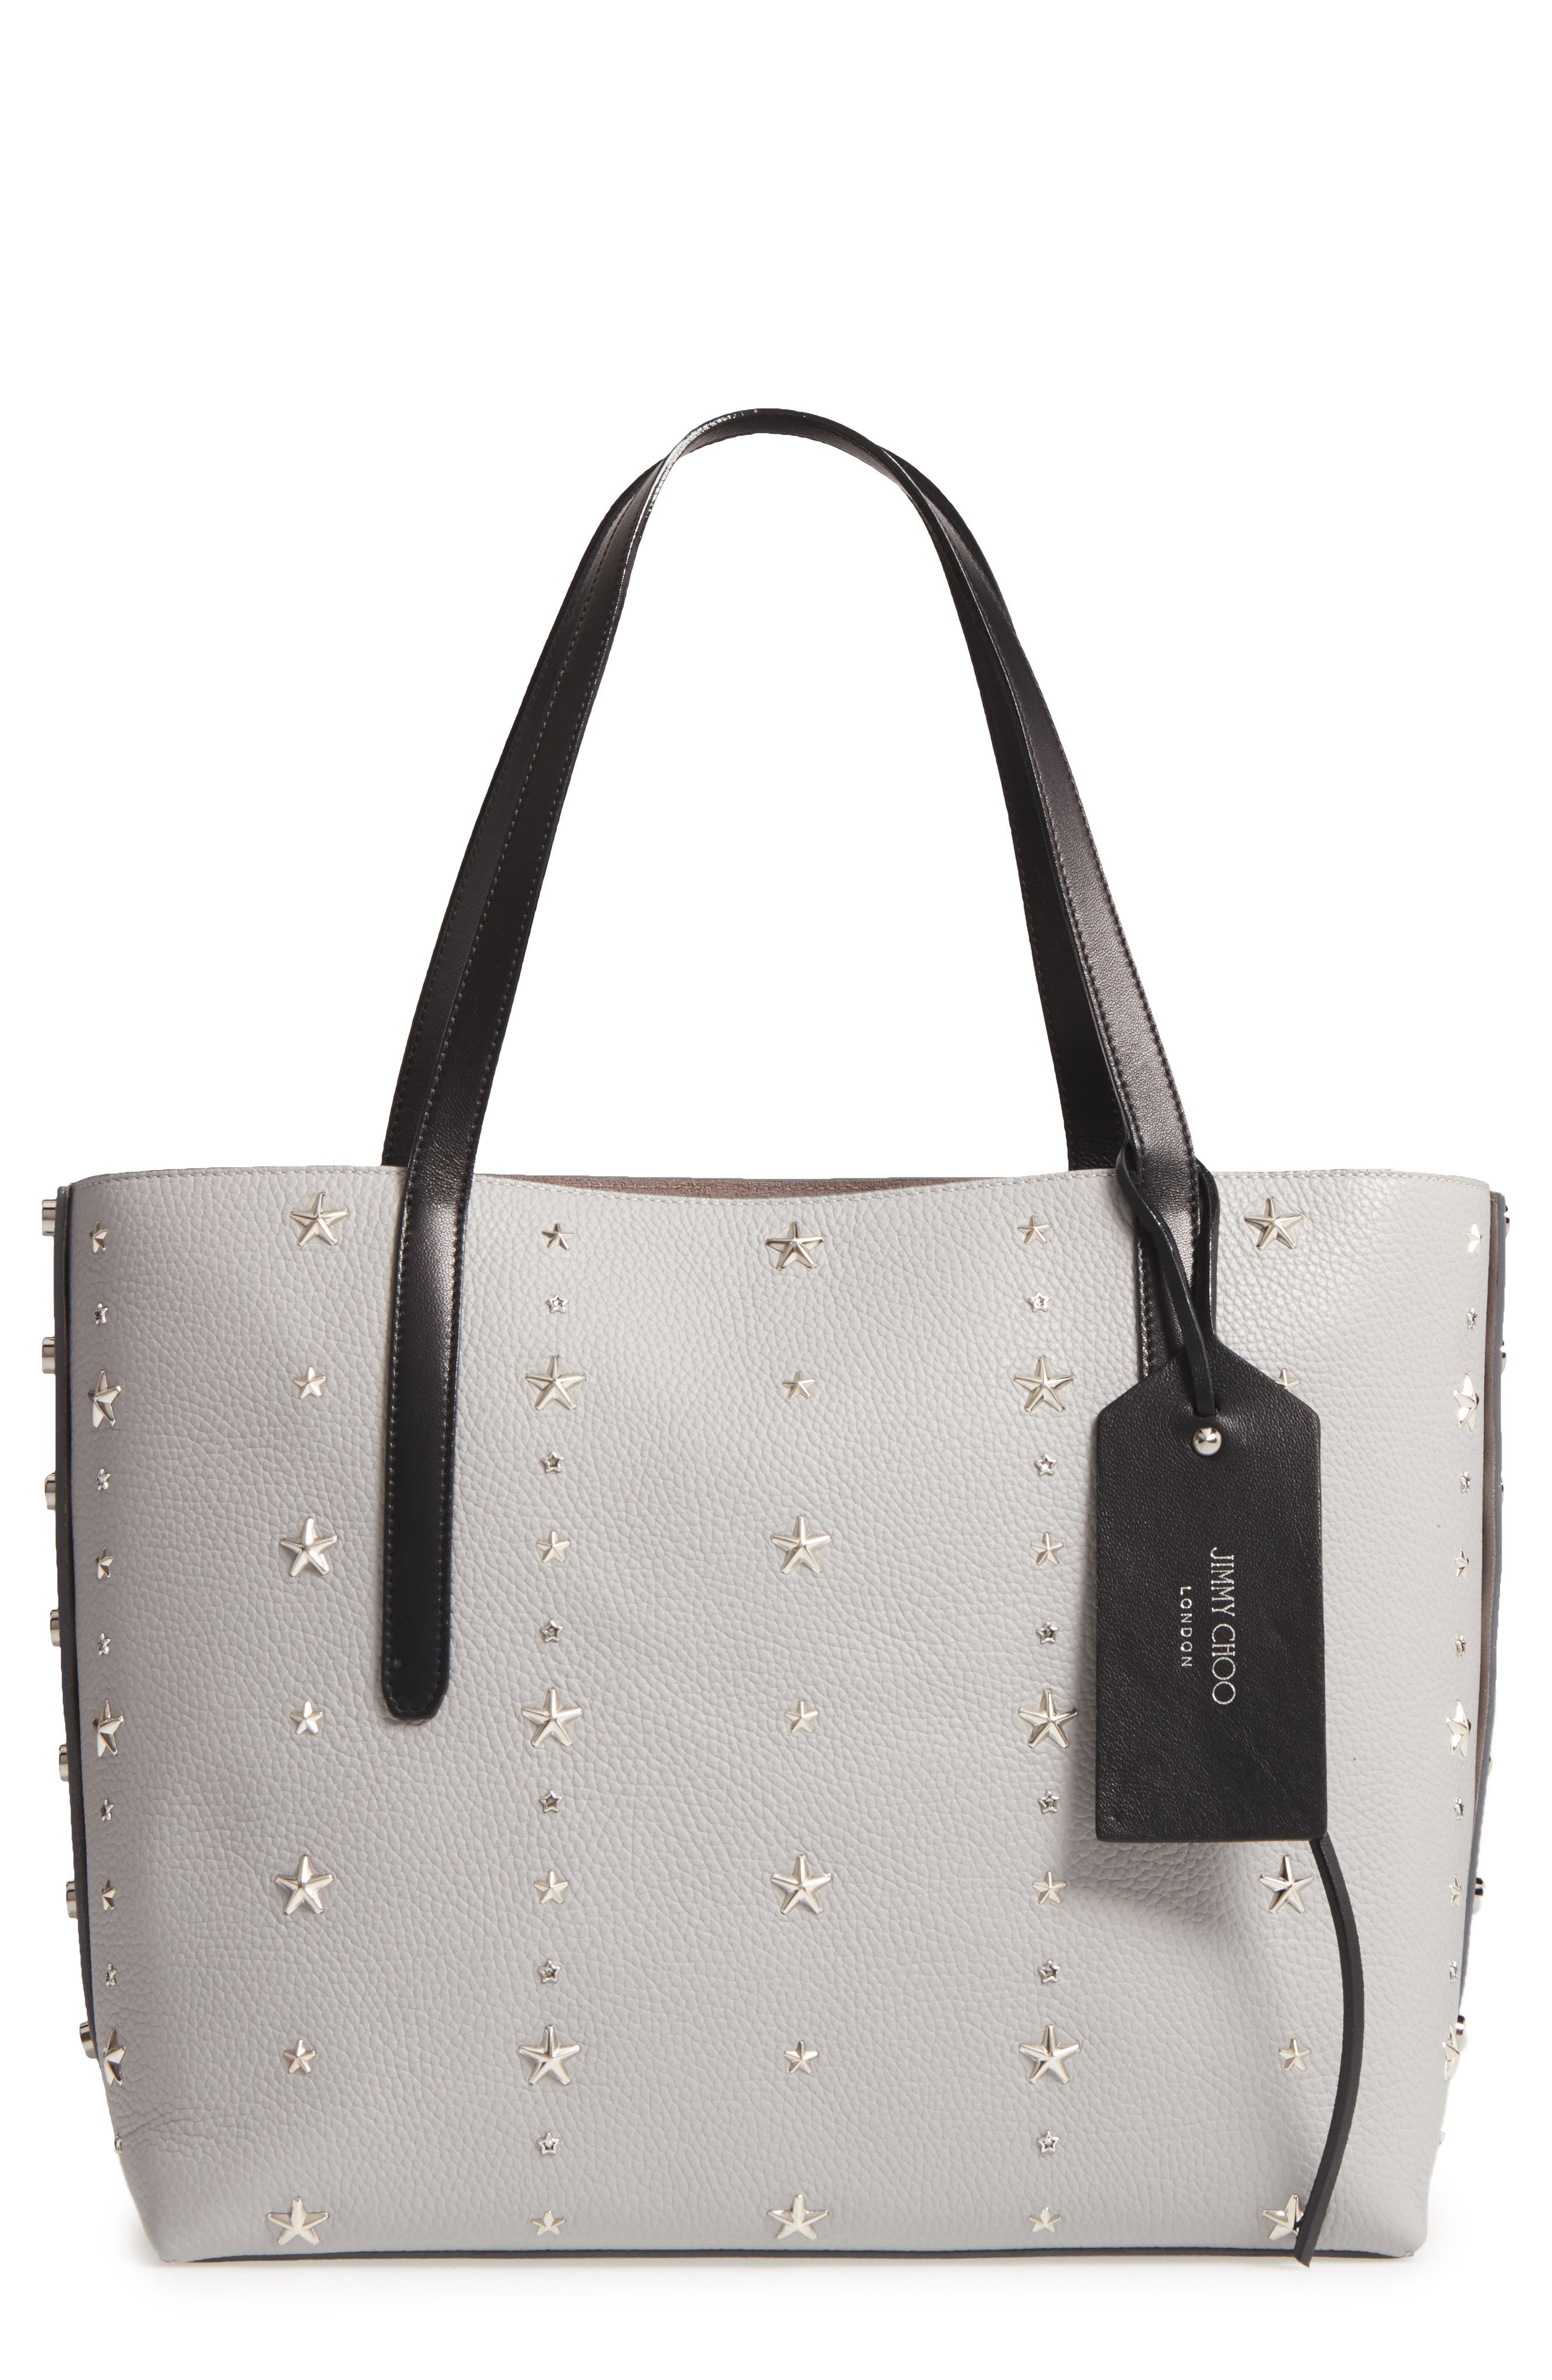 Twist East West Leather Tote,                             Main thumbnail 1, color,                             040